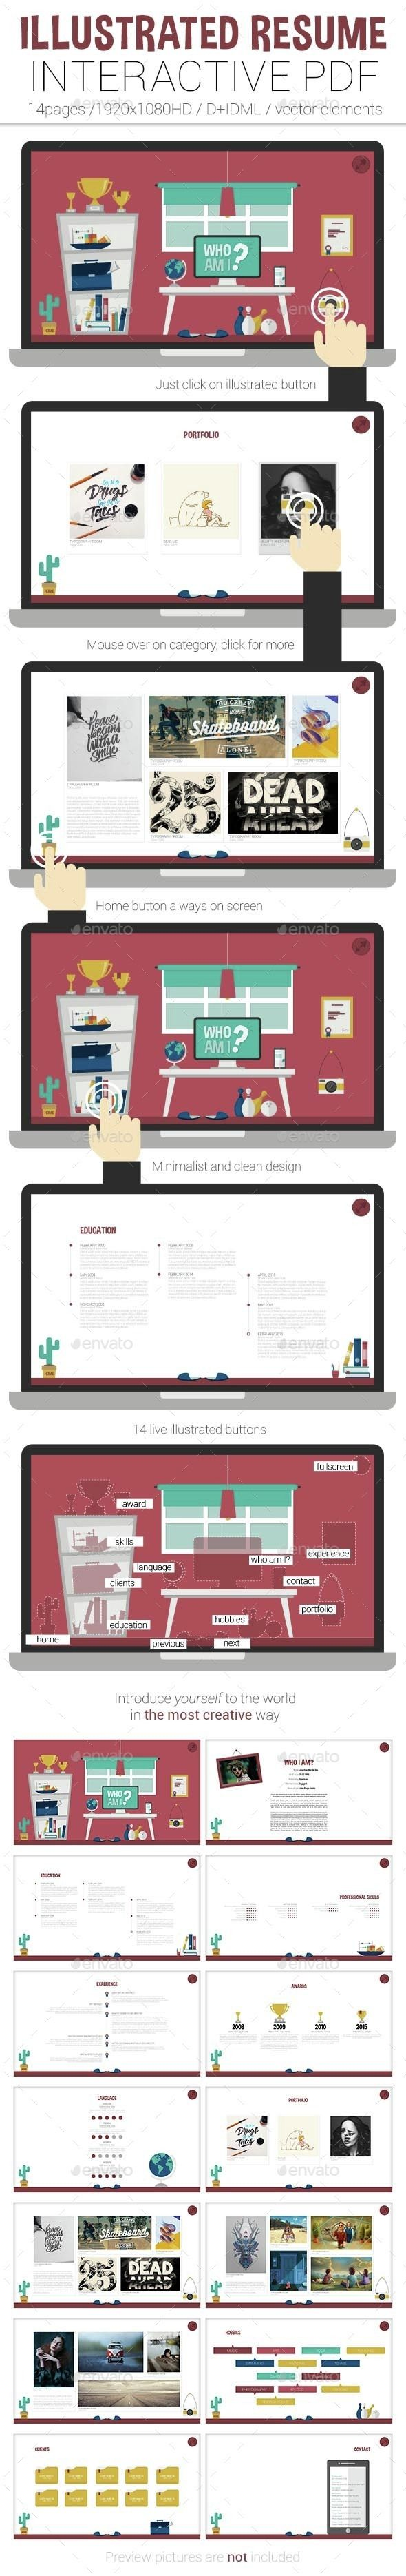 illustrated interactive pdf resume  interactive  pdf  portfolio  cv  resume  layout